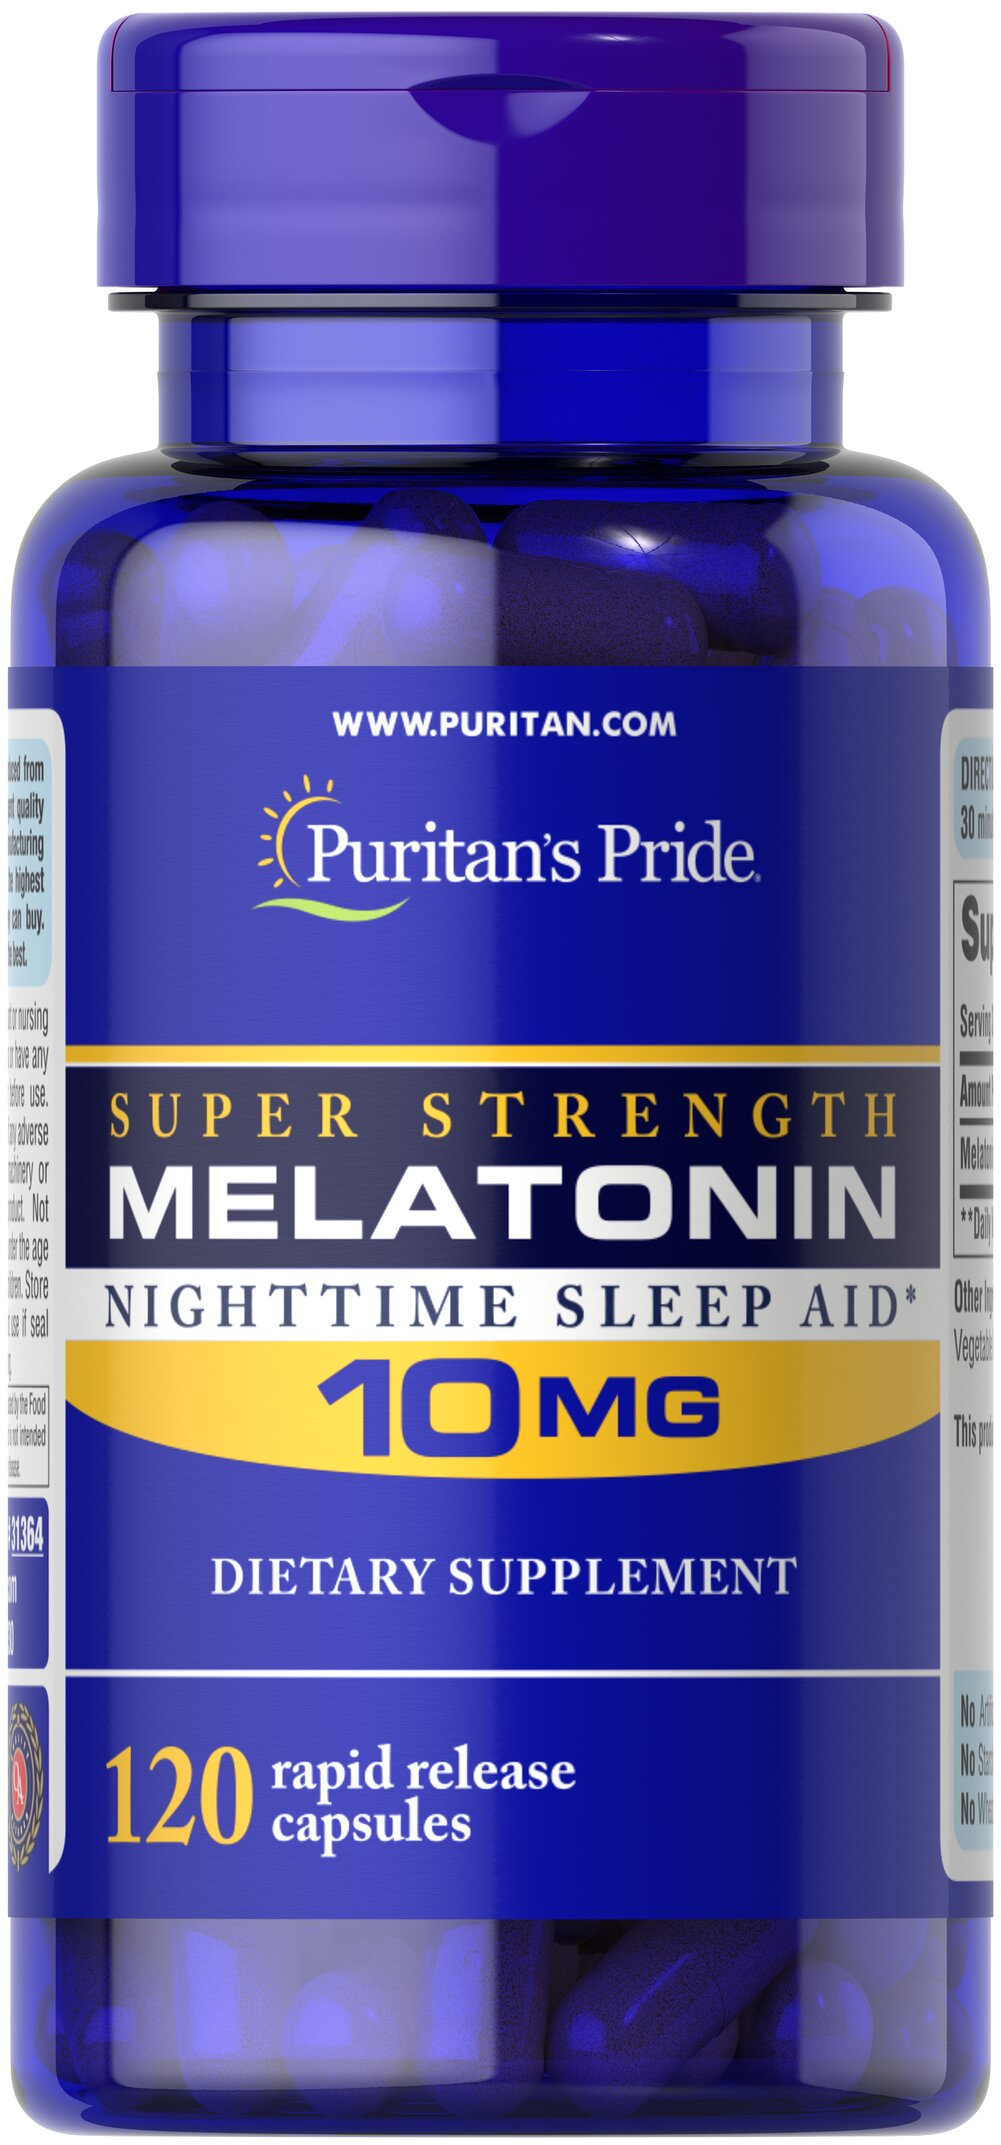 Melatonin 10 mg <p>Sometimes it's hard to unwind after a long day. That's when it's time for Melatonin, a hormone naturally produced in the body that is closely involved in the natural sleep cycle.** It's a terrific choice if you experience occasional sleeplessness or jet lag, or if you want to improve your quality of rest.**  Melatonin helps you fall asleep quickly and stay asleep longer**<br /></p> 120 Capsules 10 mg $19.99